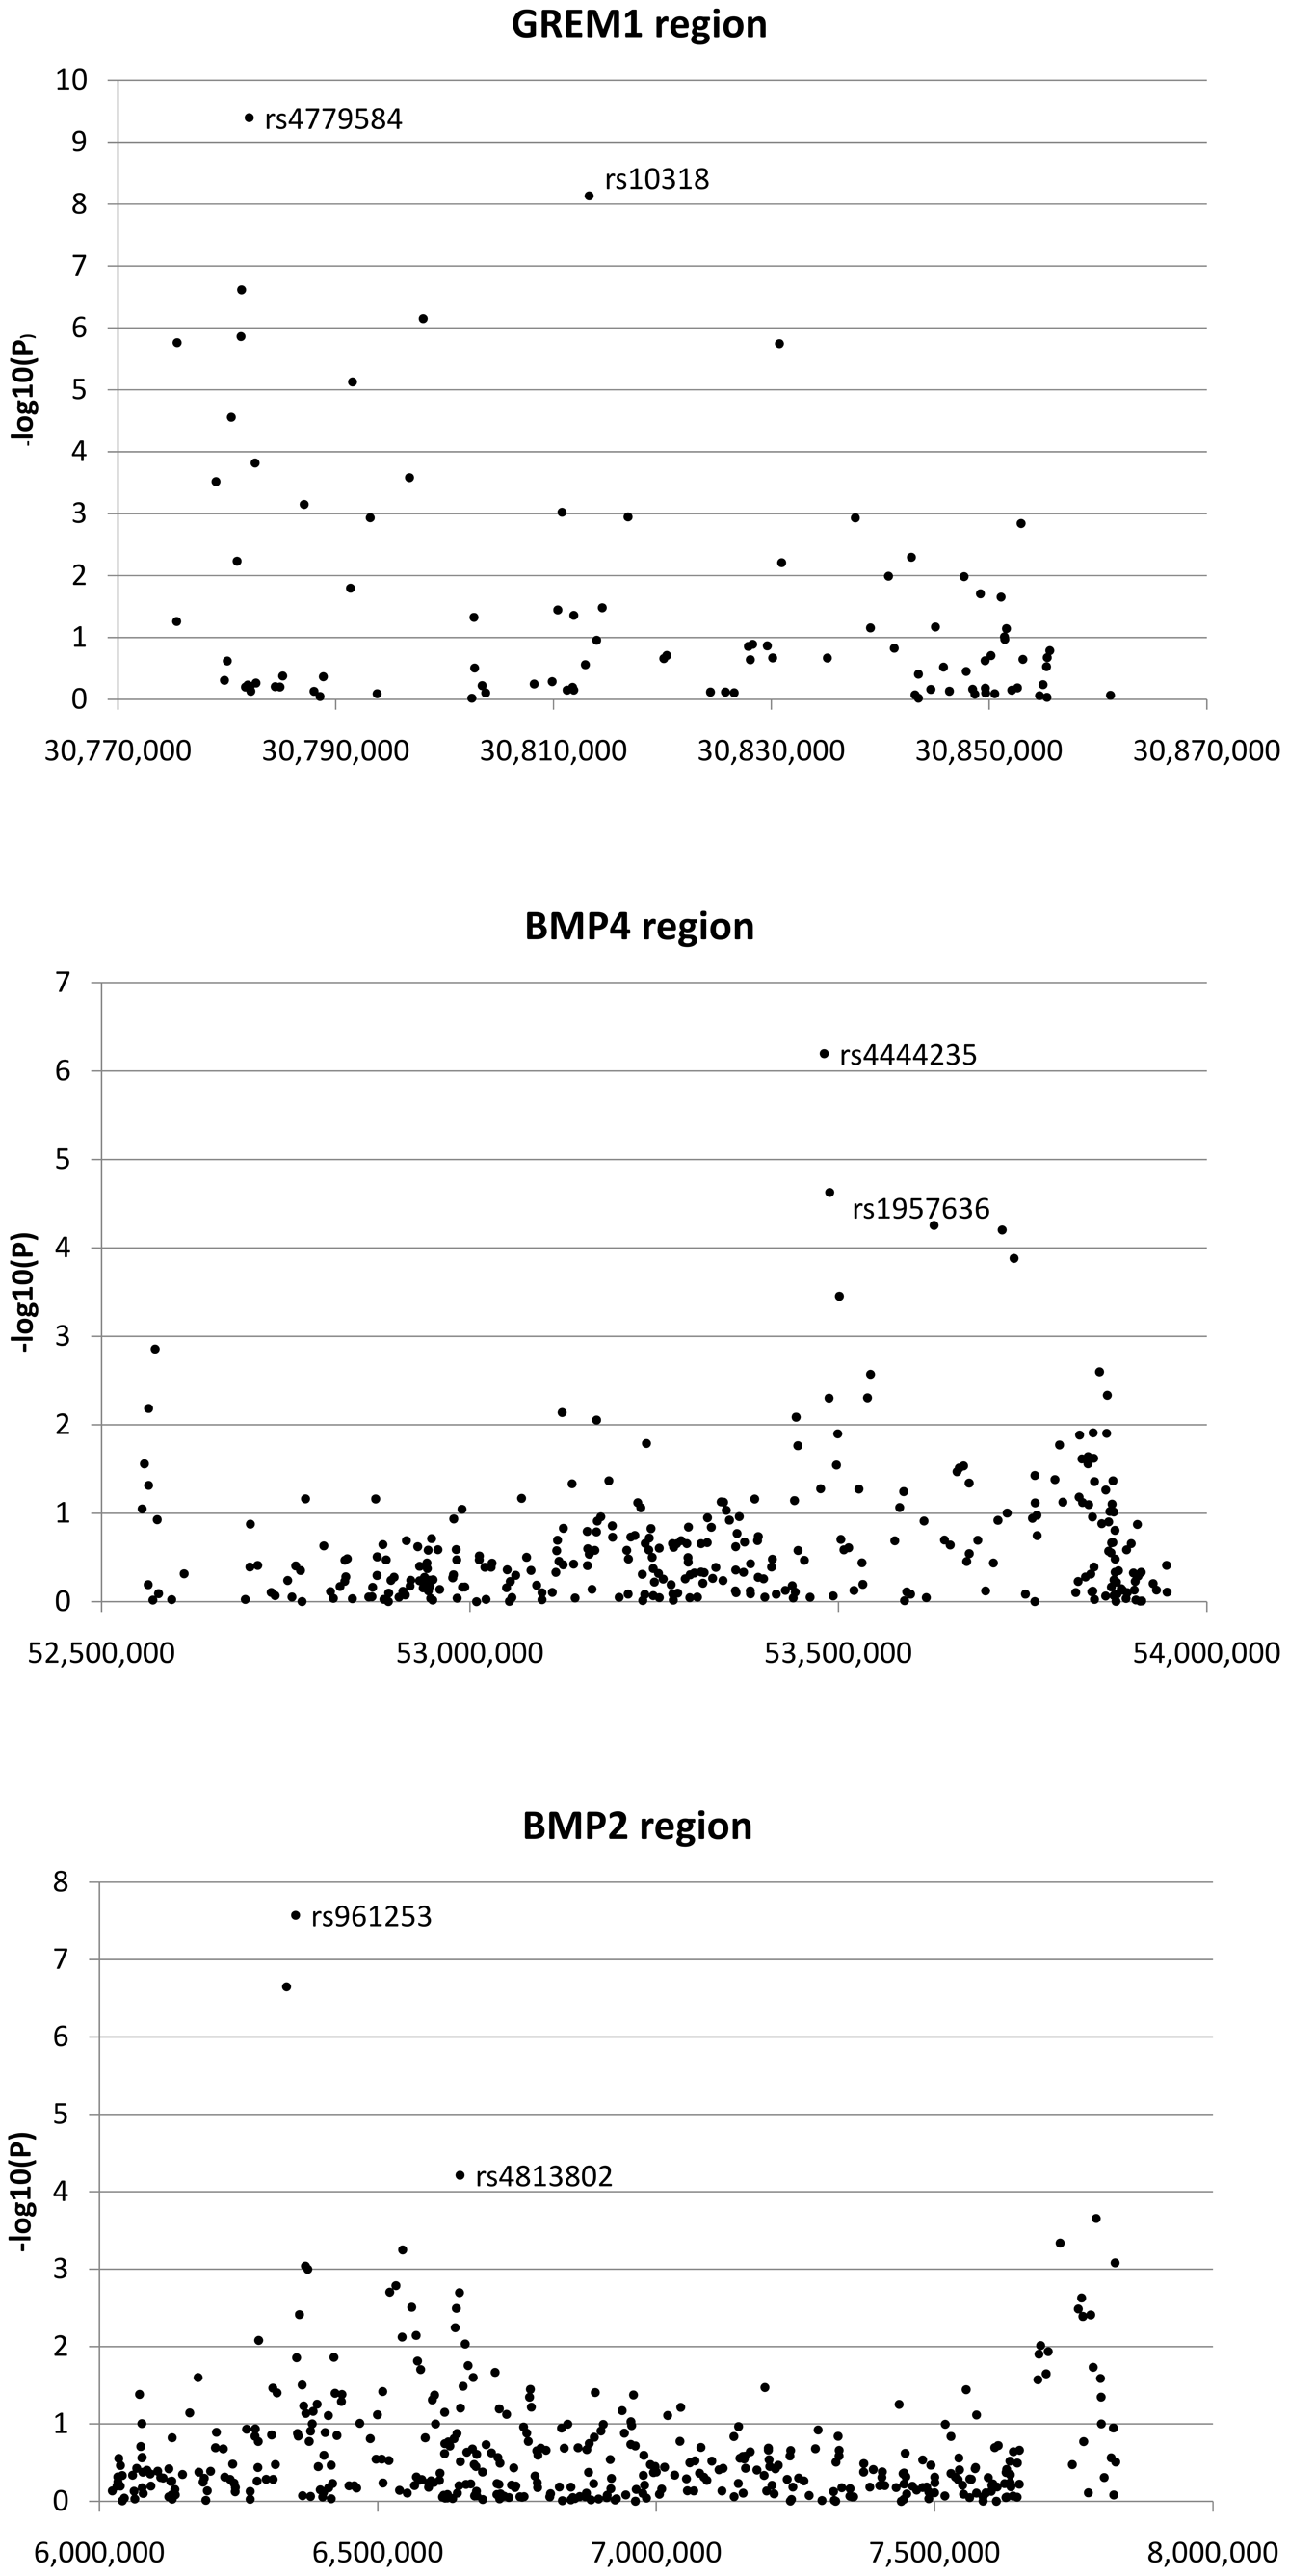 Search for additional colorectal cancer susceptibility SNPs near <i>GREM1</i>, <i>BMP4</i>, and <i>BMP2</i>.